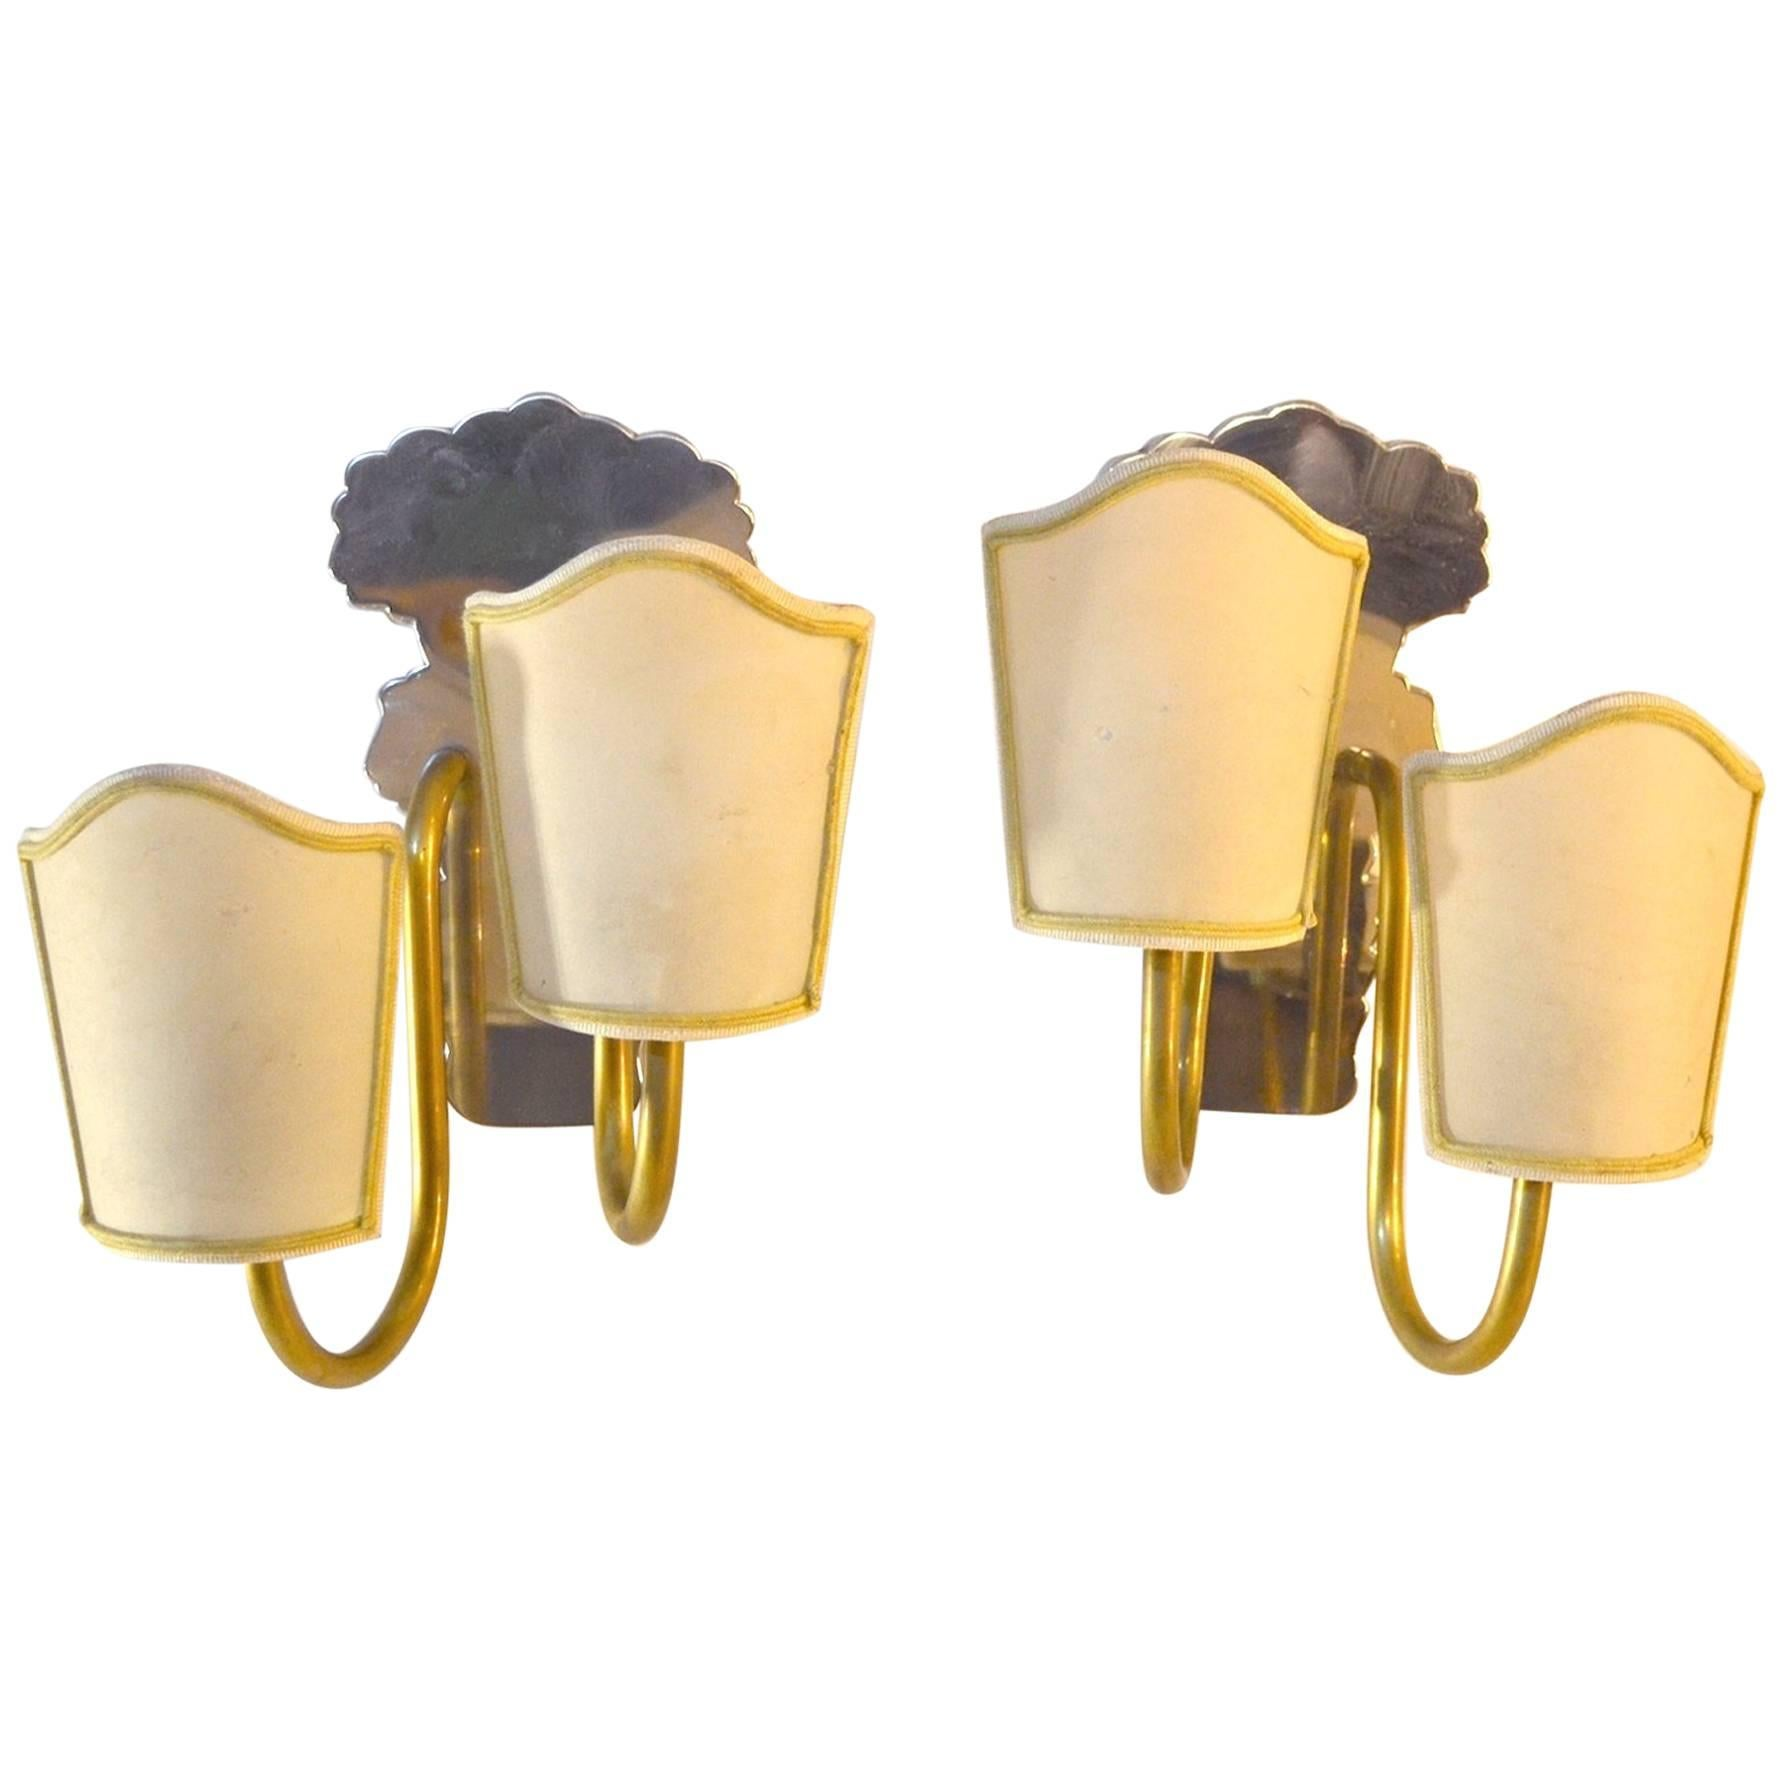 Classic Art Deco Wall Sconces at 1stdibs